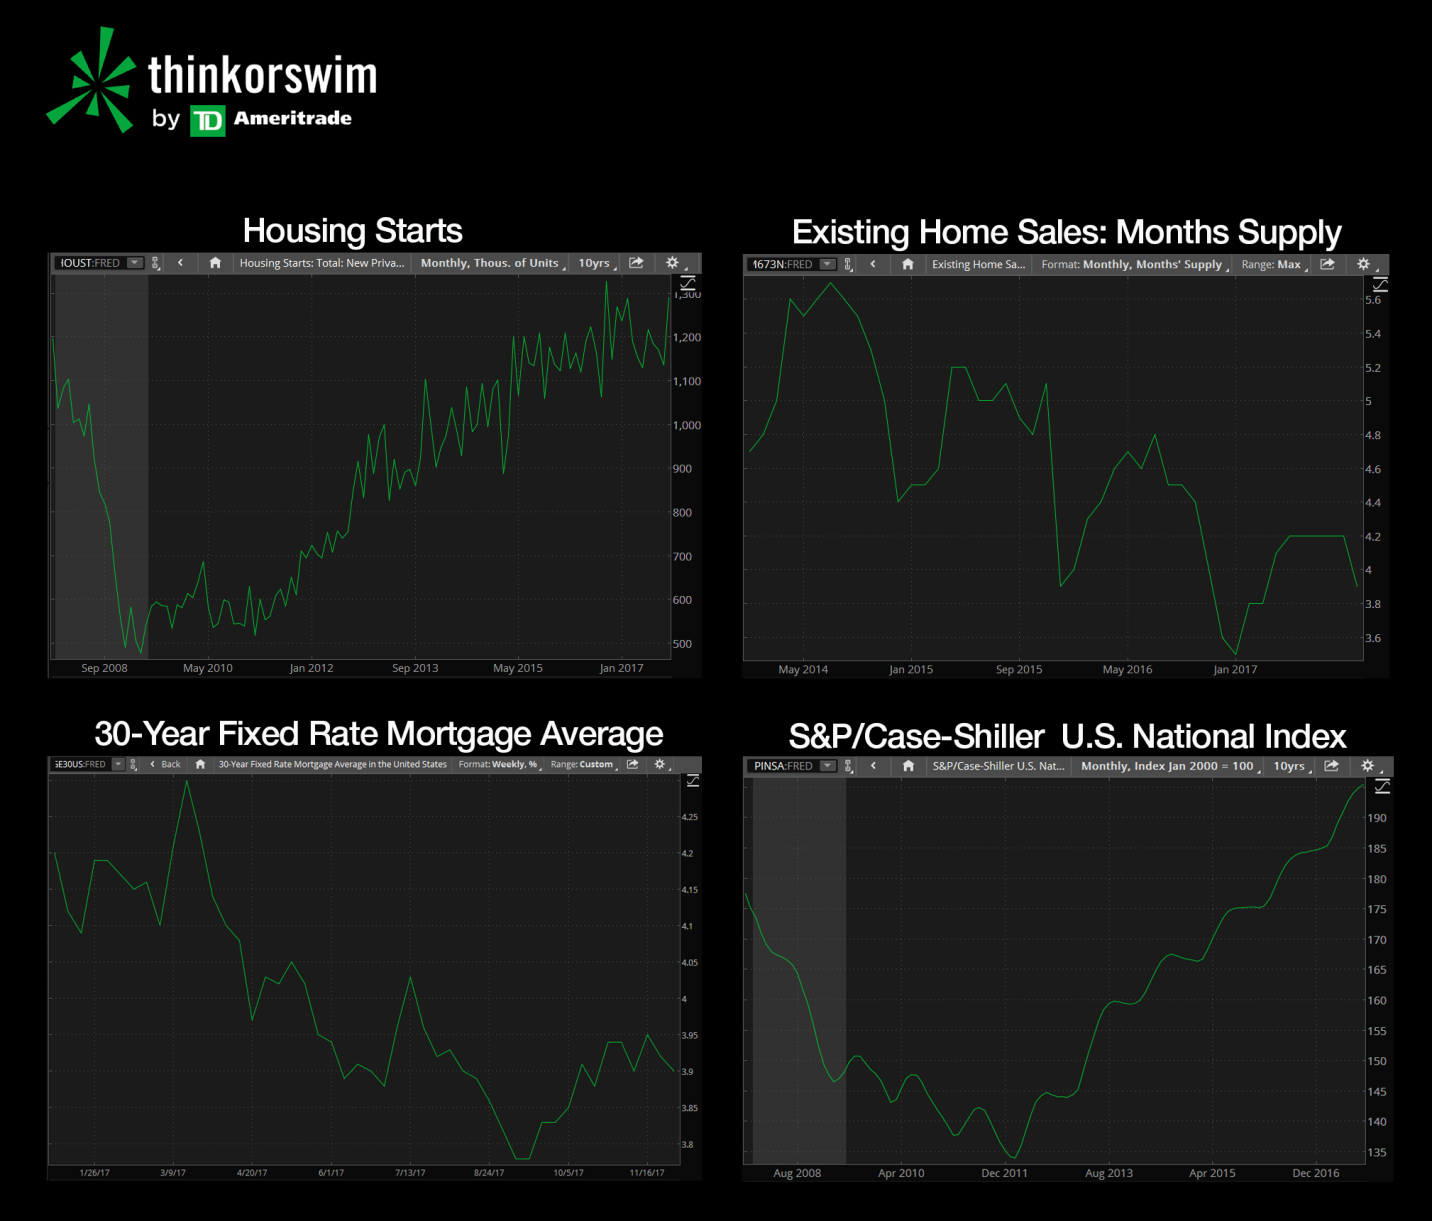 Thinkorswim charts showing different aspects of housing market economic data